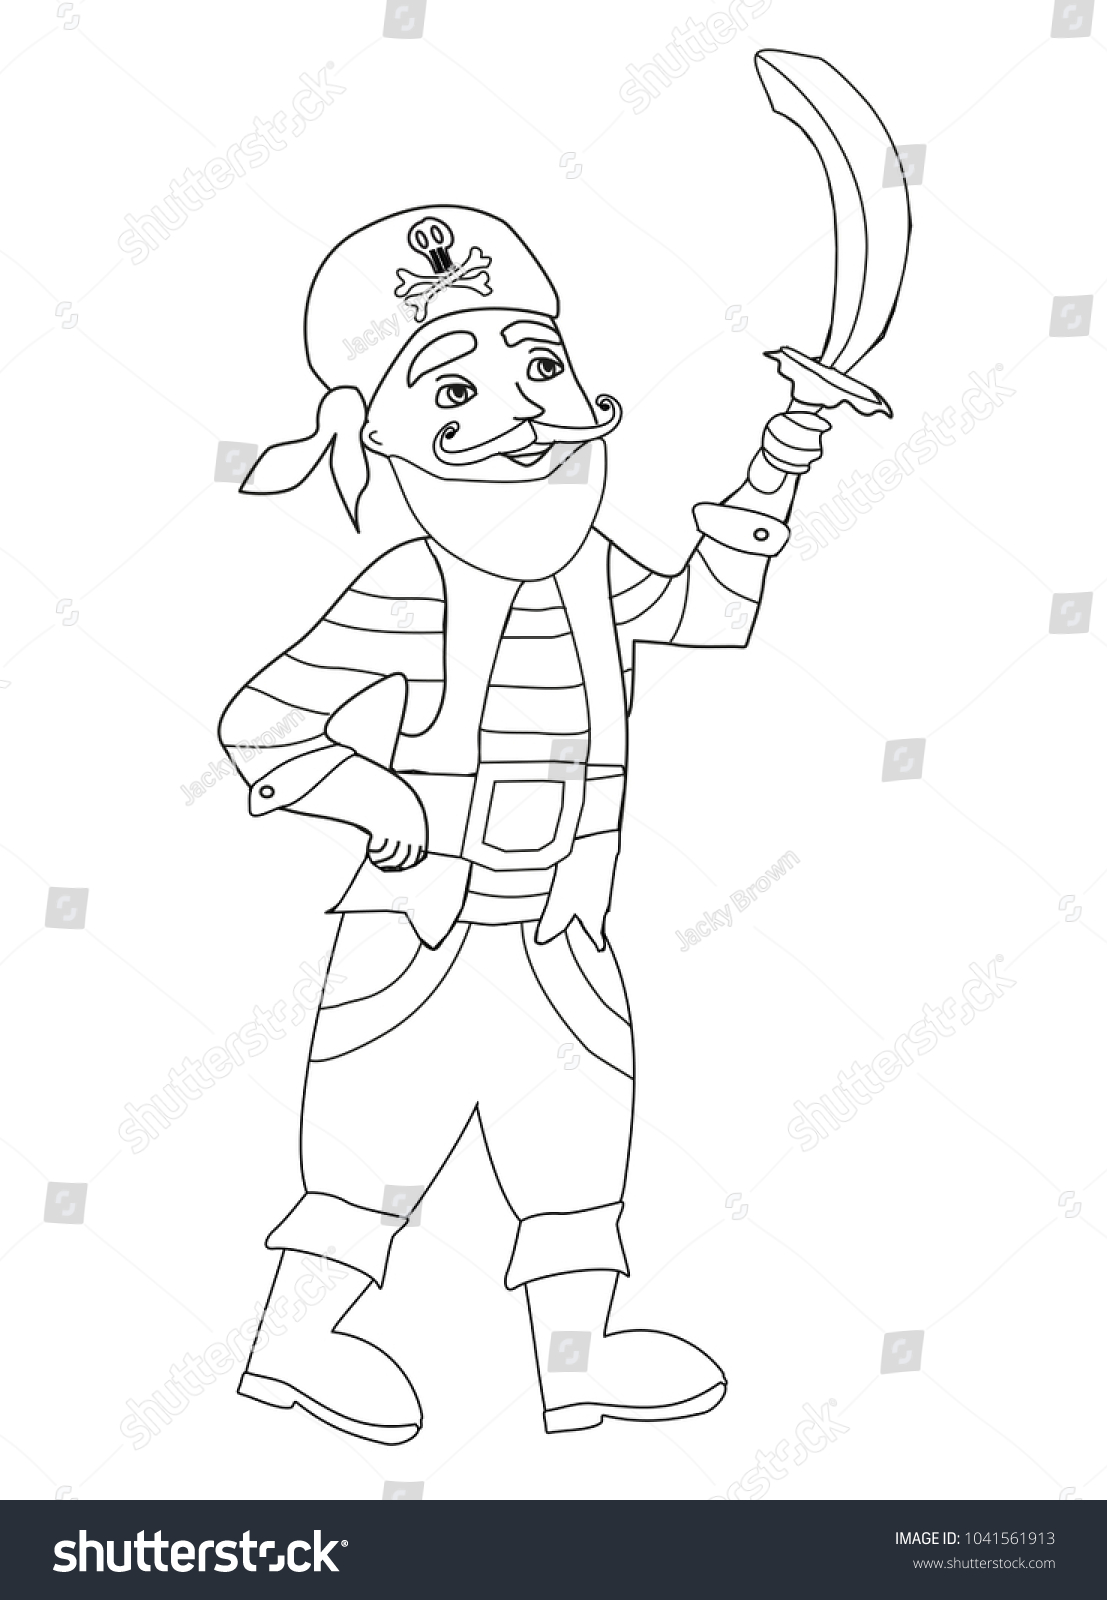 Funny Pirate Coloring Book Stock Illustration 1041561913 - Shutterstock